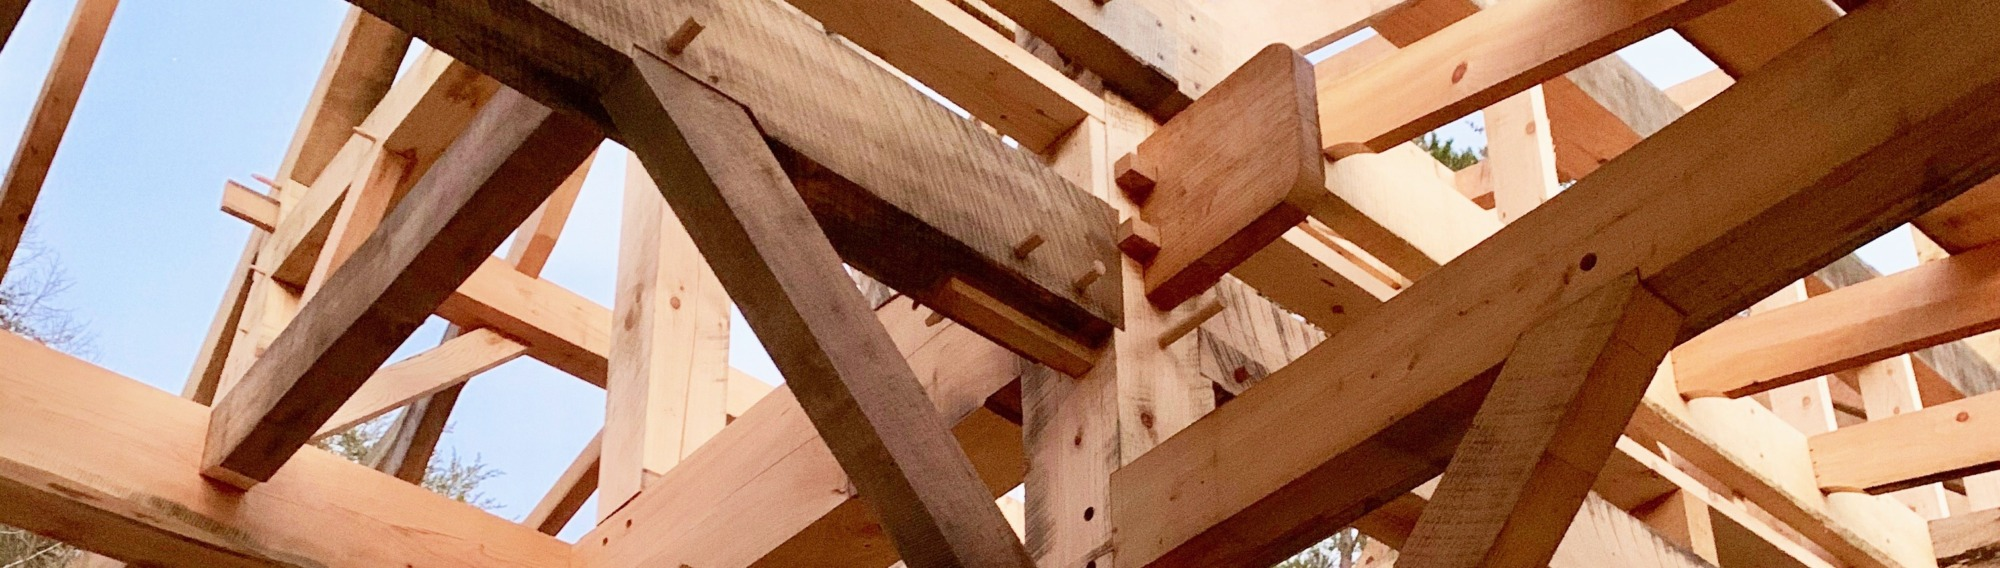 beams of timber frame building